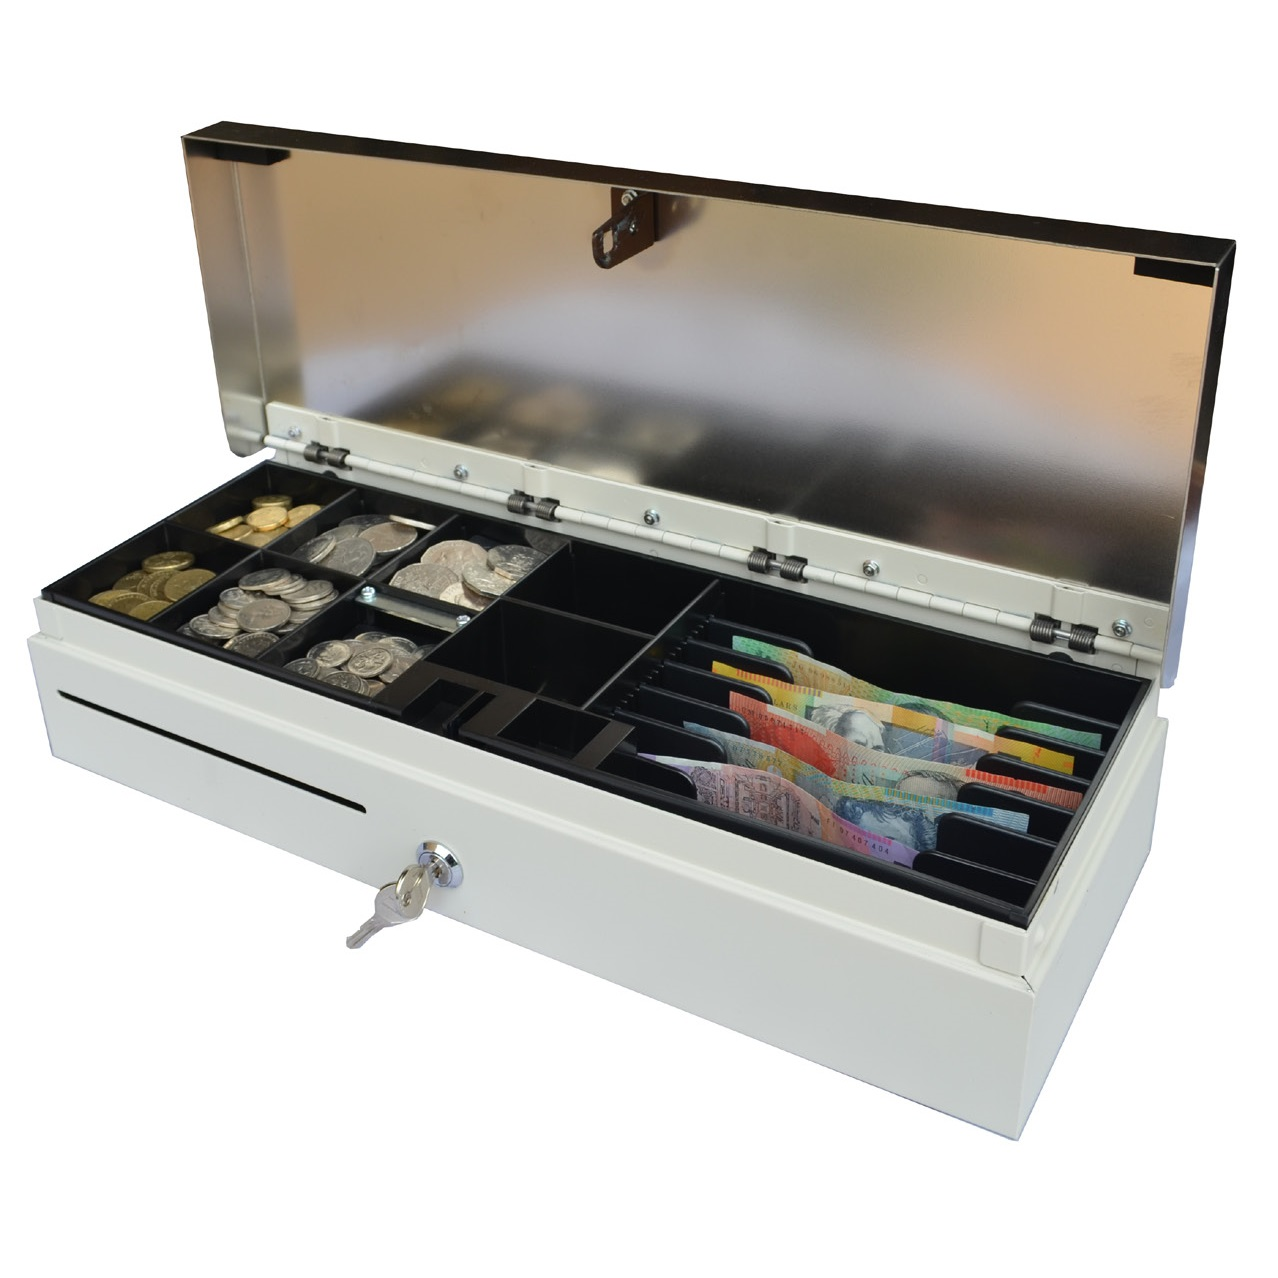 Goodson Gc100fd Cash Drawer